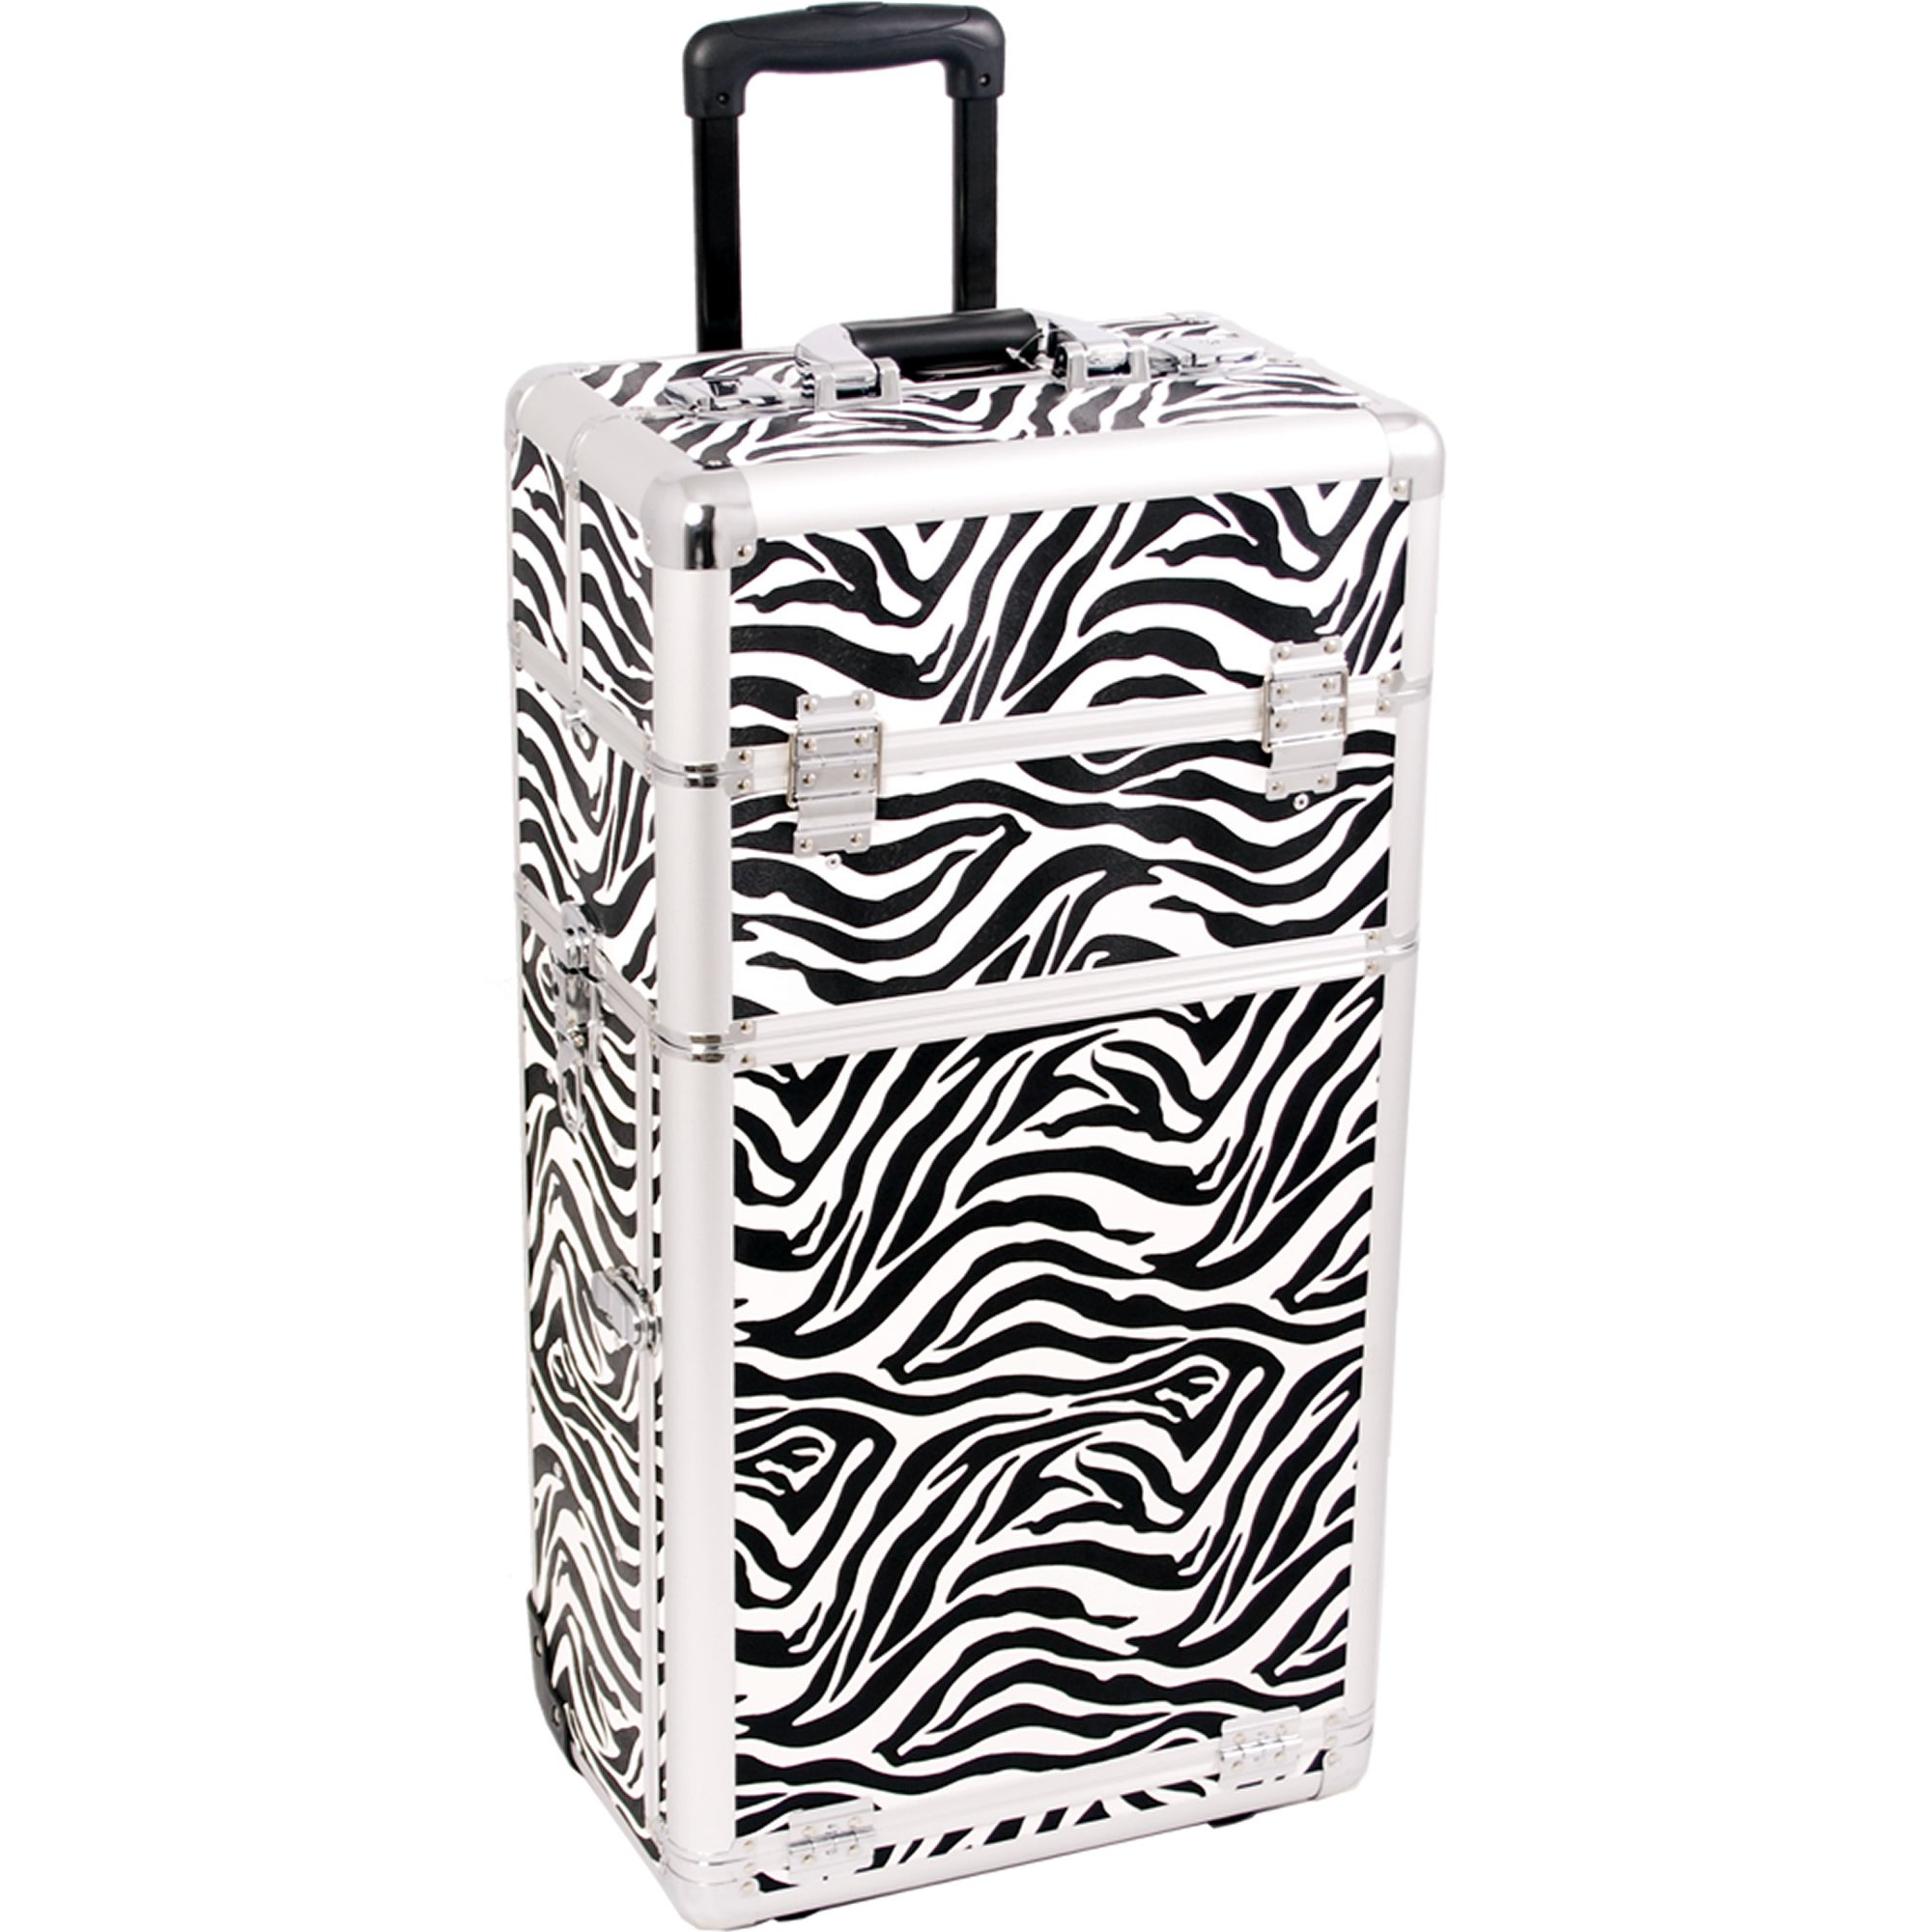 SUNRISE Rolling Cosmetic Case 2 in 1 Pro Artist I3162 Aluminum, 4 Slide Trays and 4 Small Drawers with Shoulder Strap, White Zebra